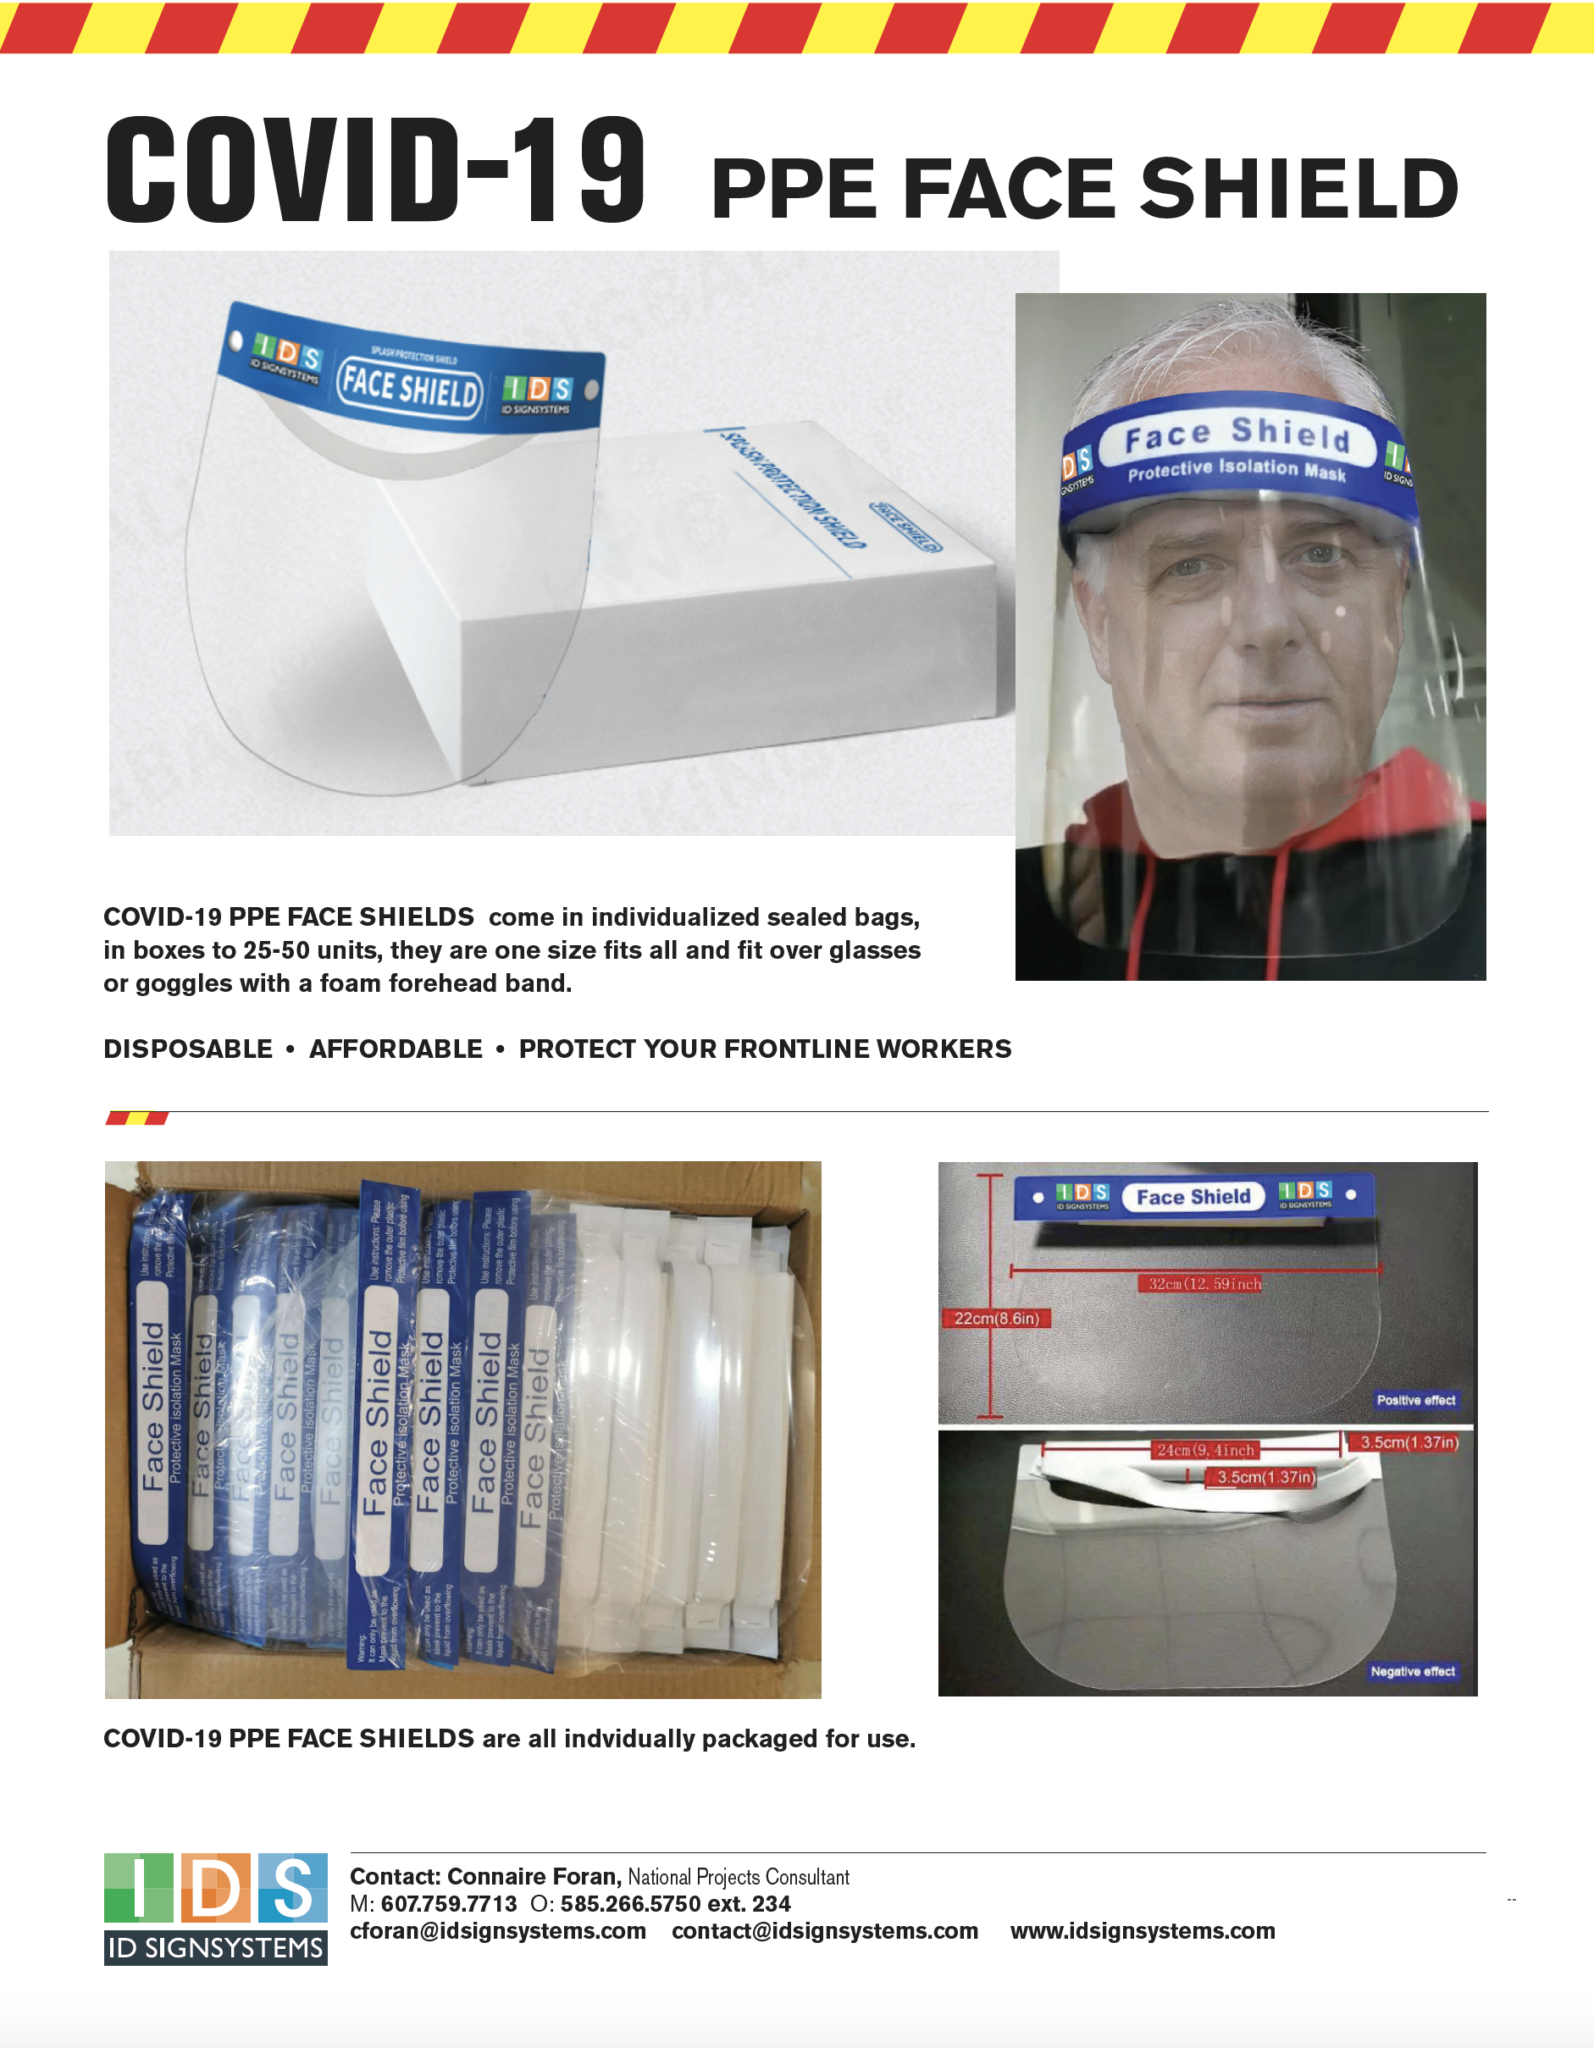 COVID-19 PPE Face Shields